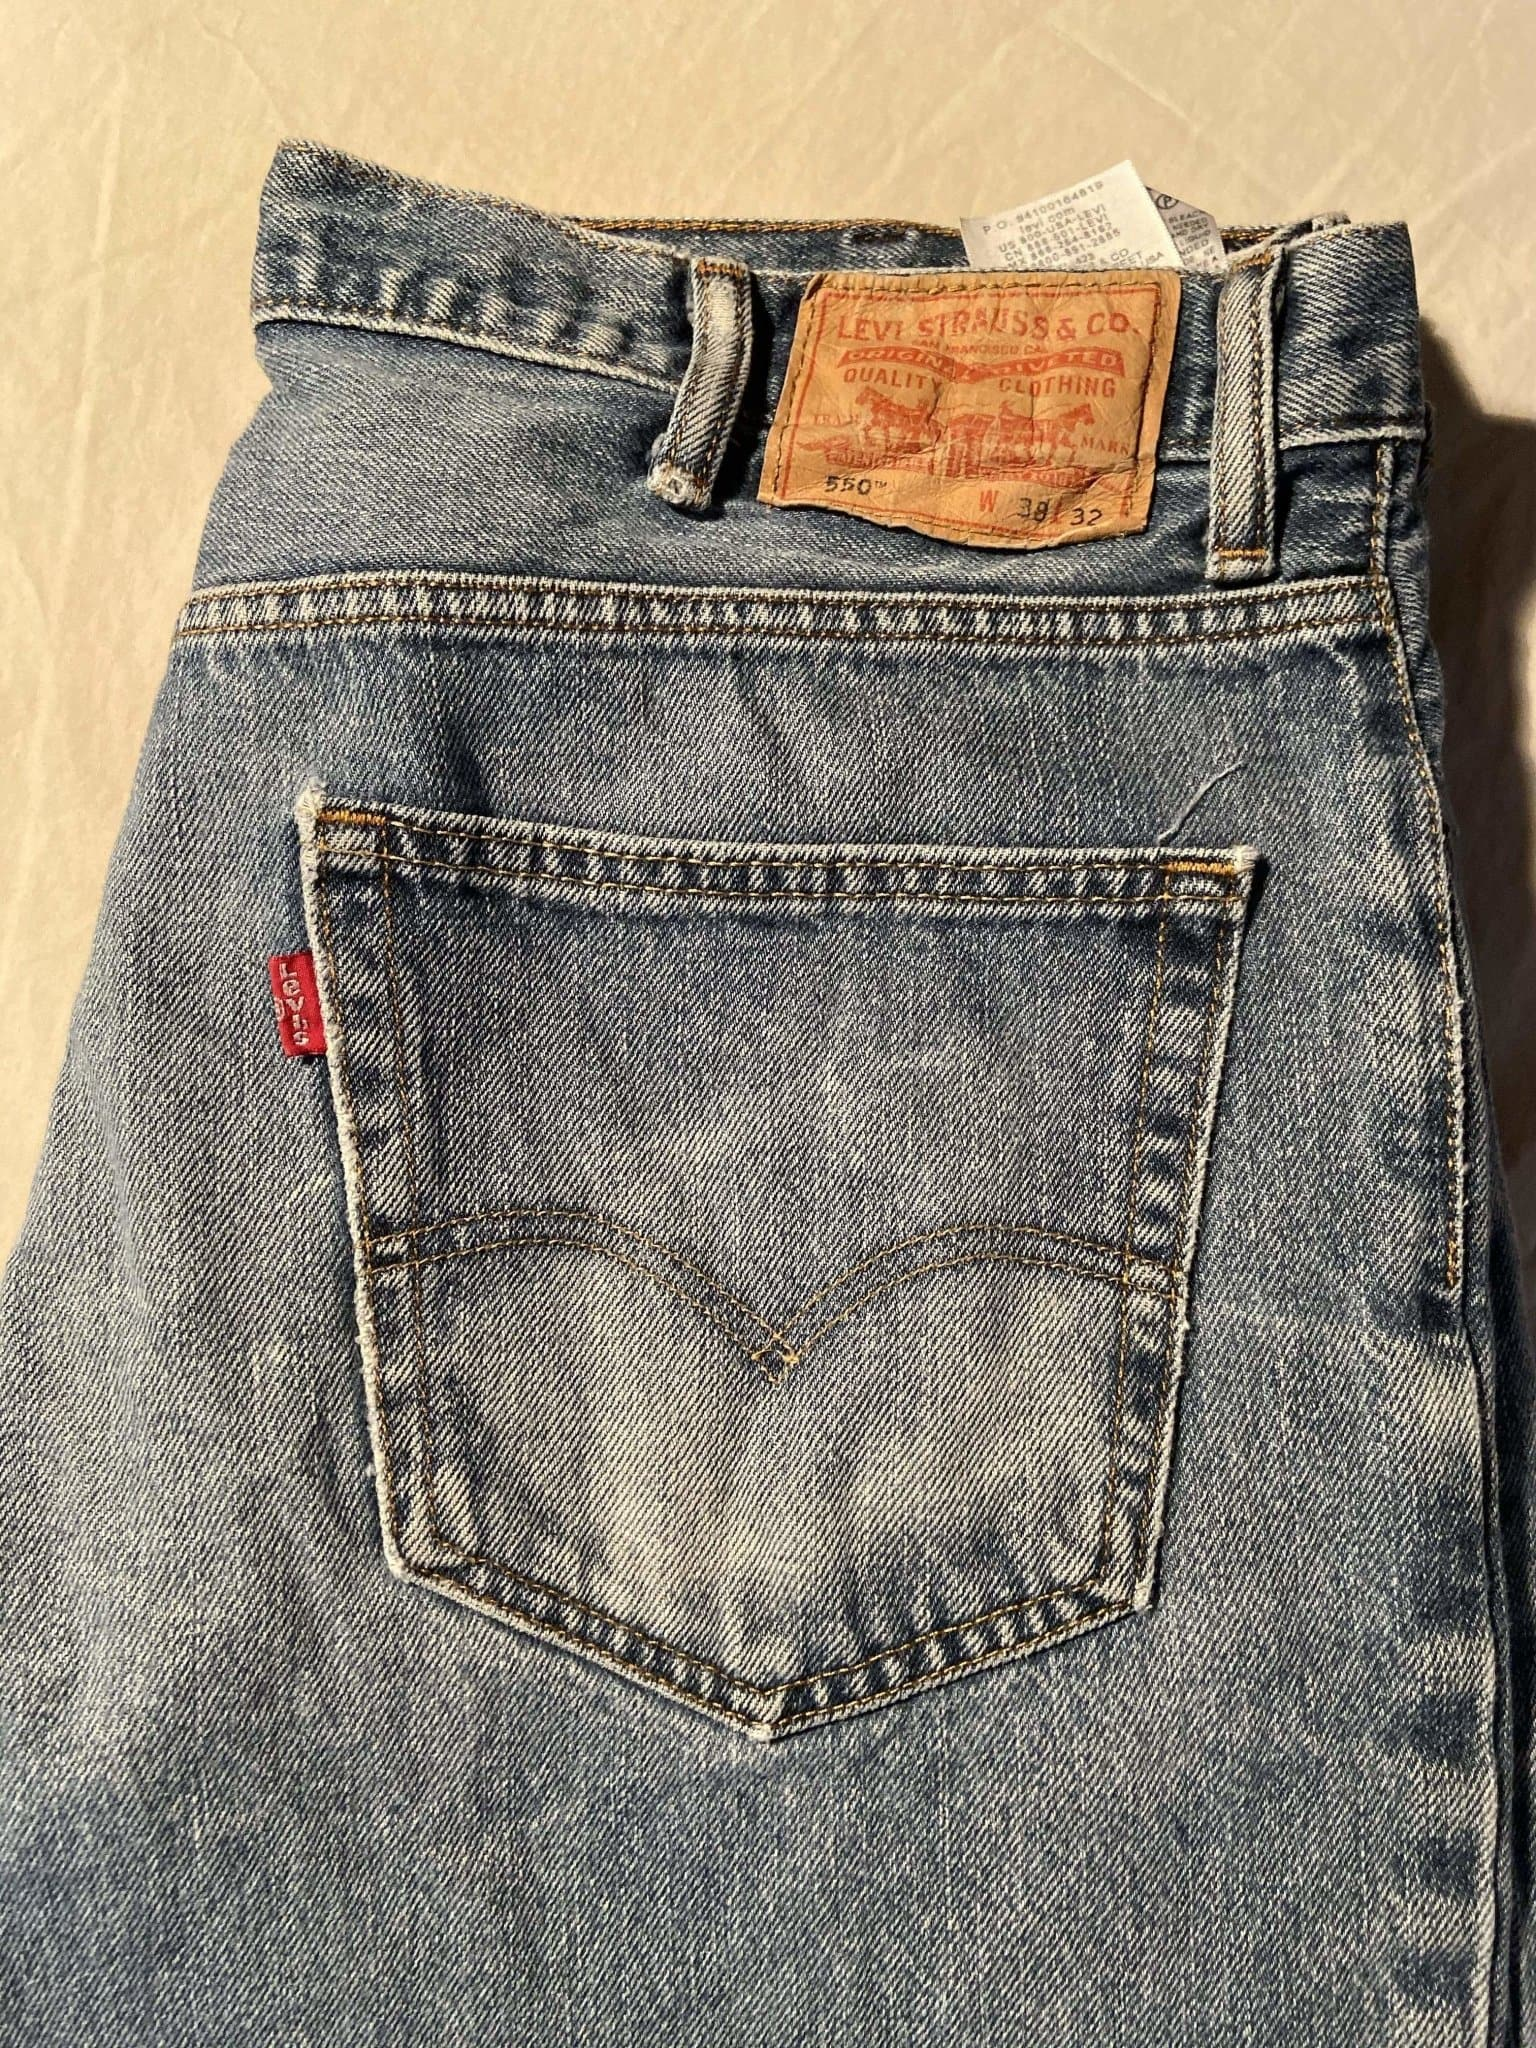 Levi's 550 Jeans W38 L32 (T3) - Discounted Deals UK